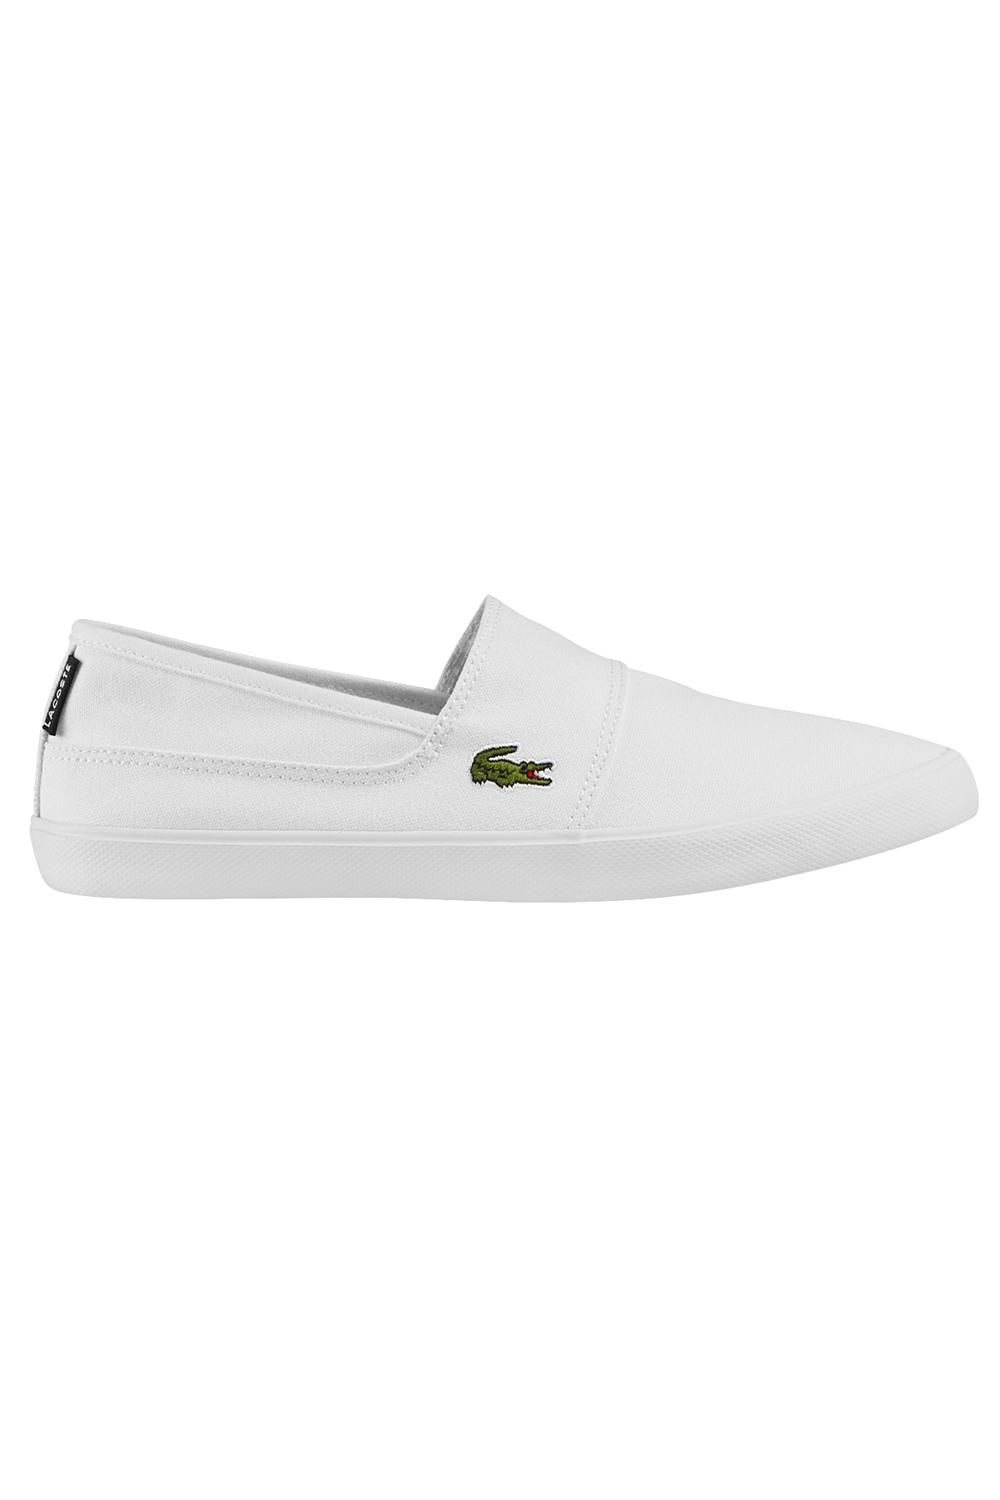 miniature 3 - Homme-Lacoste-Marice-Lacet-Toile-Chaussures-Decontractees-Confortable-Tennis-Escarpins